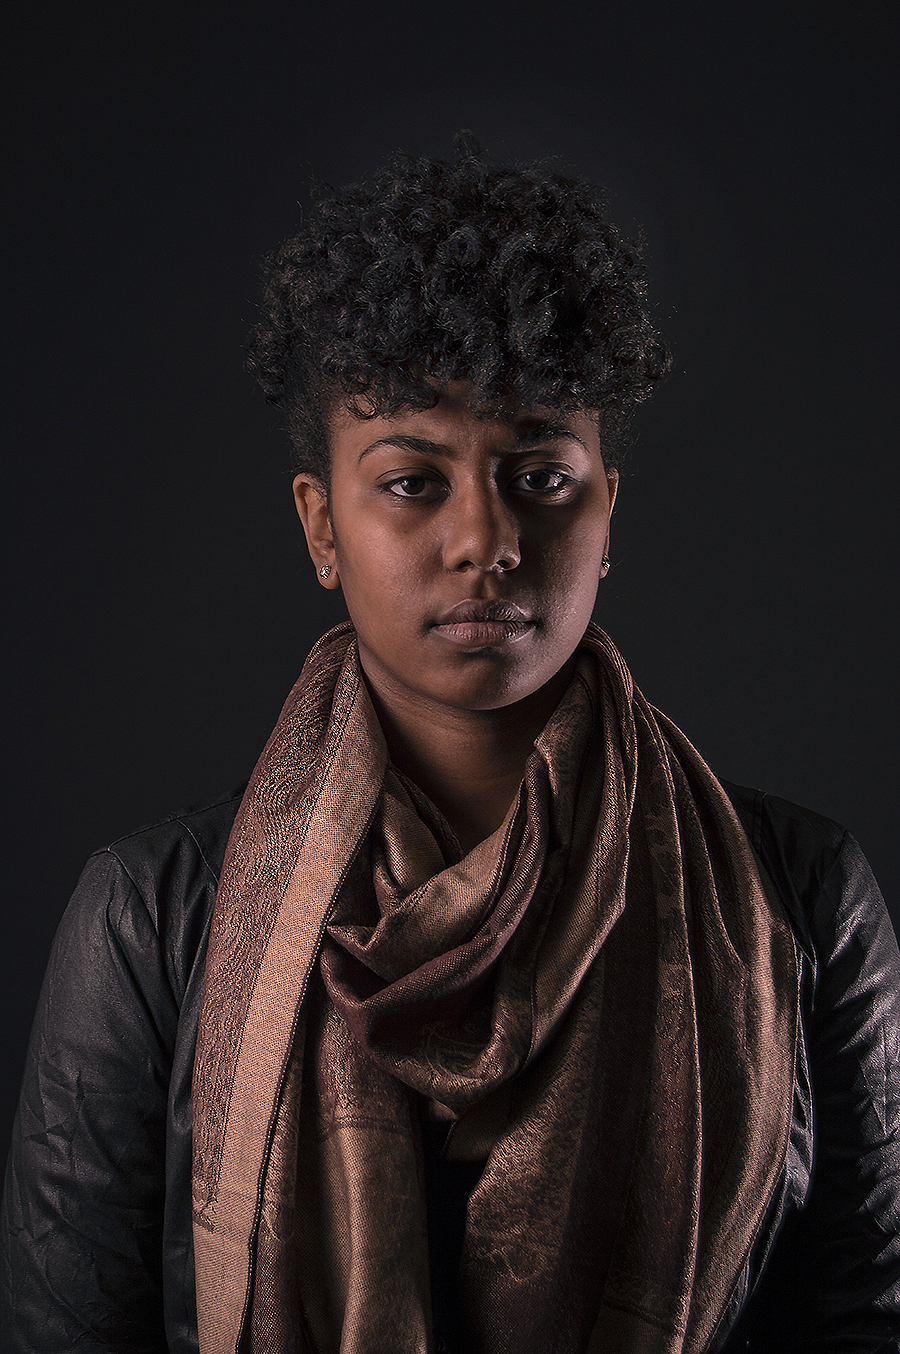 Jasmin_Smoots_photography_2016_Rachel_Palmer_portraiture_serious_expression_anger_disappointment